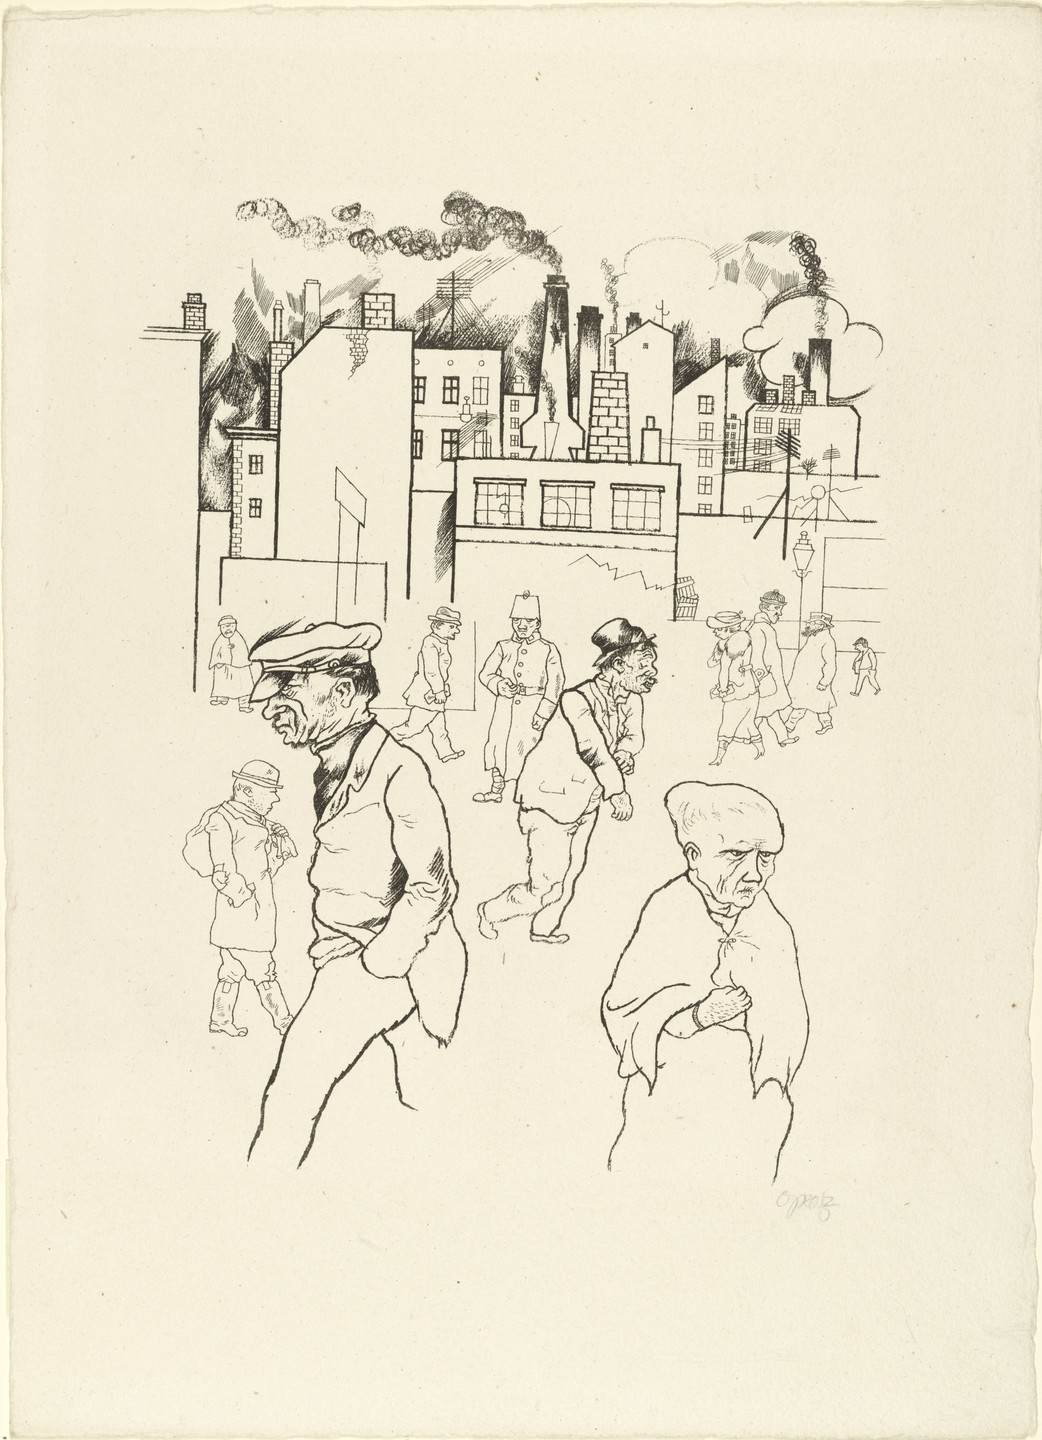 George Grosz. Outside the Factories from In the Shadows (Im Schatten). c. 1920, published 1921